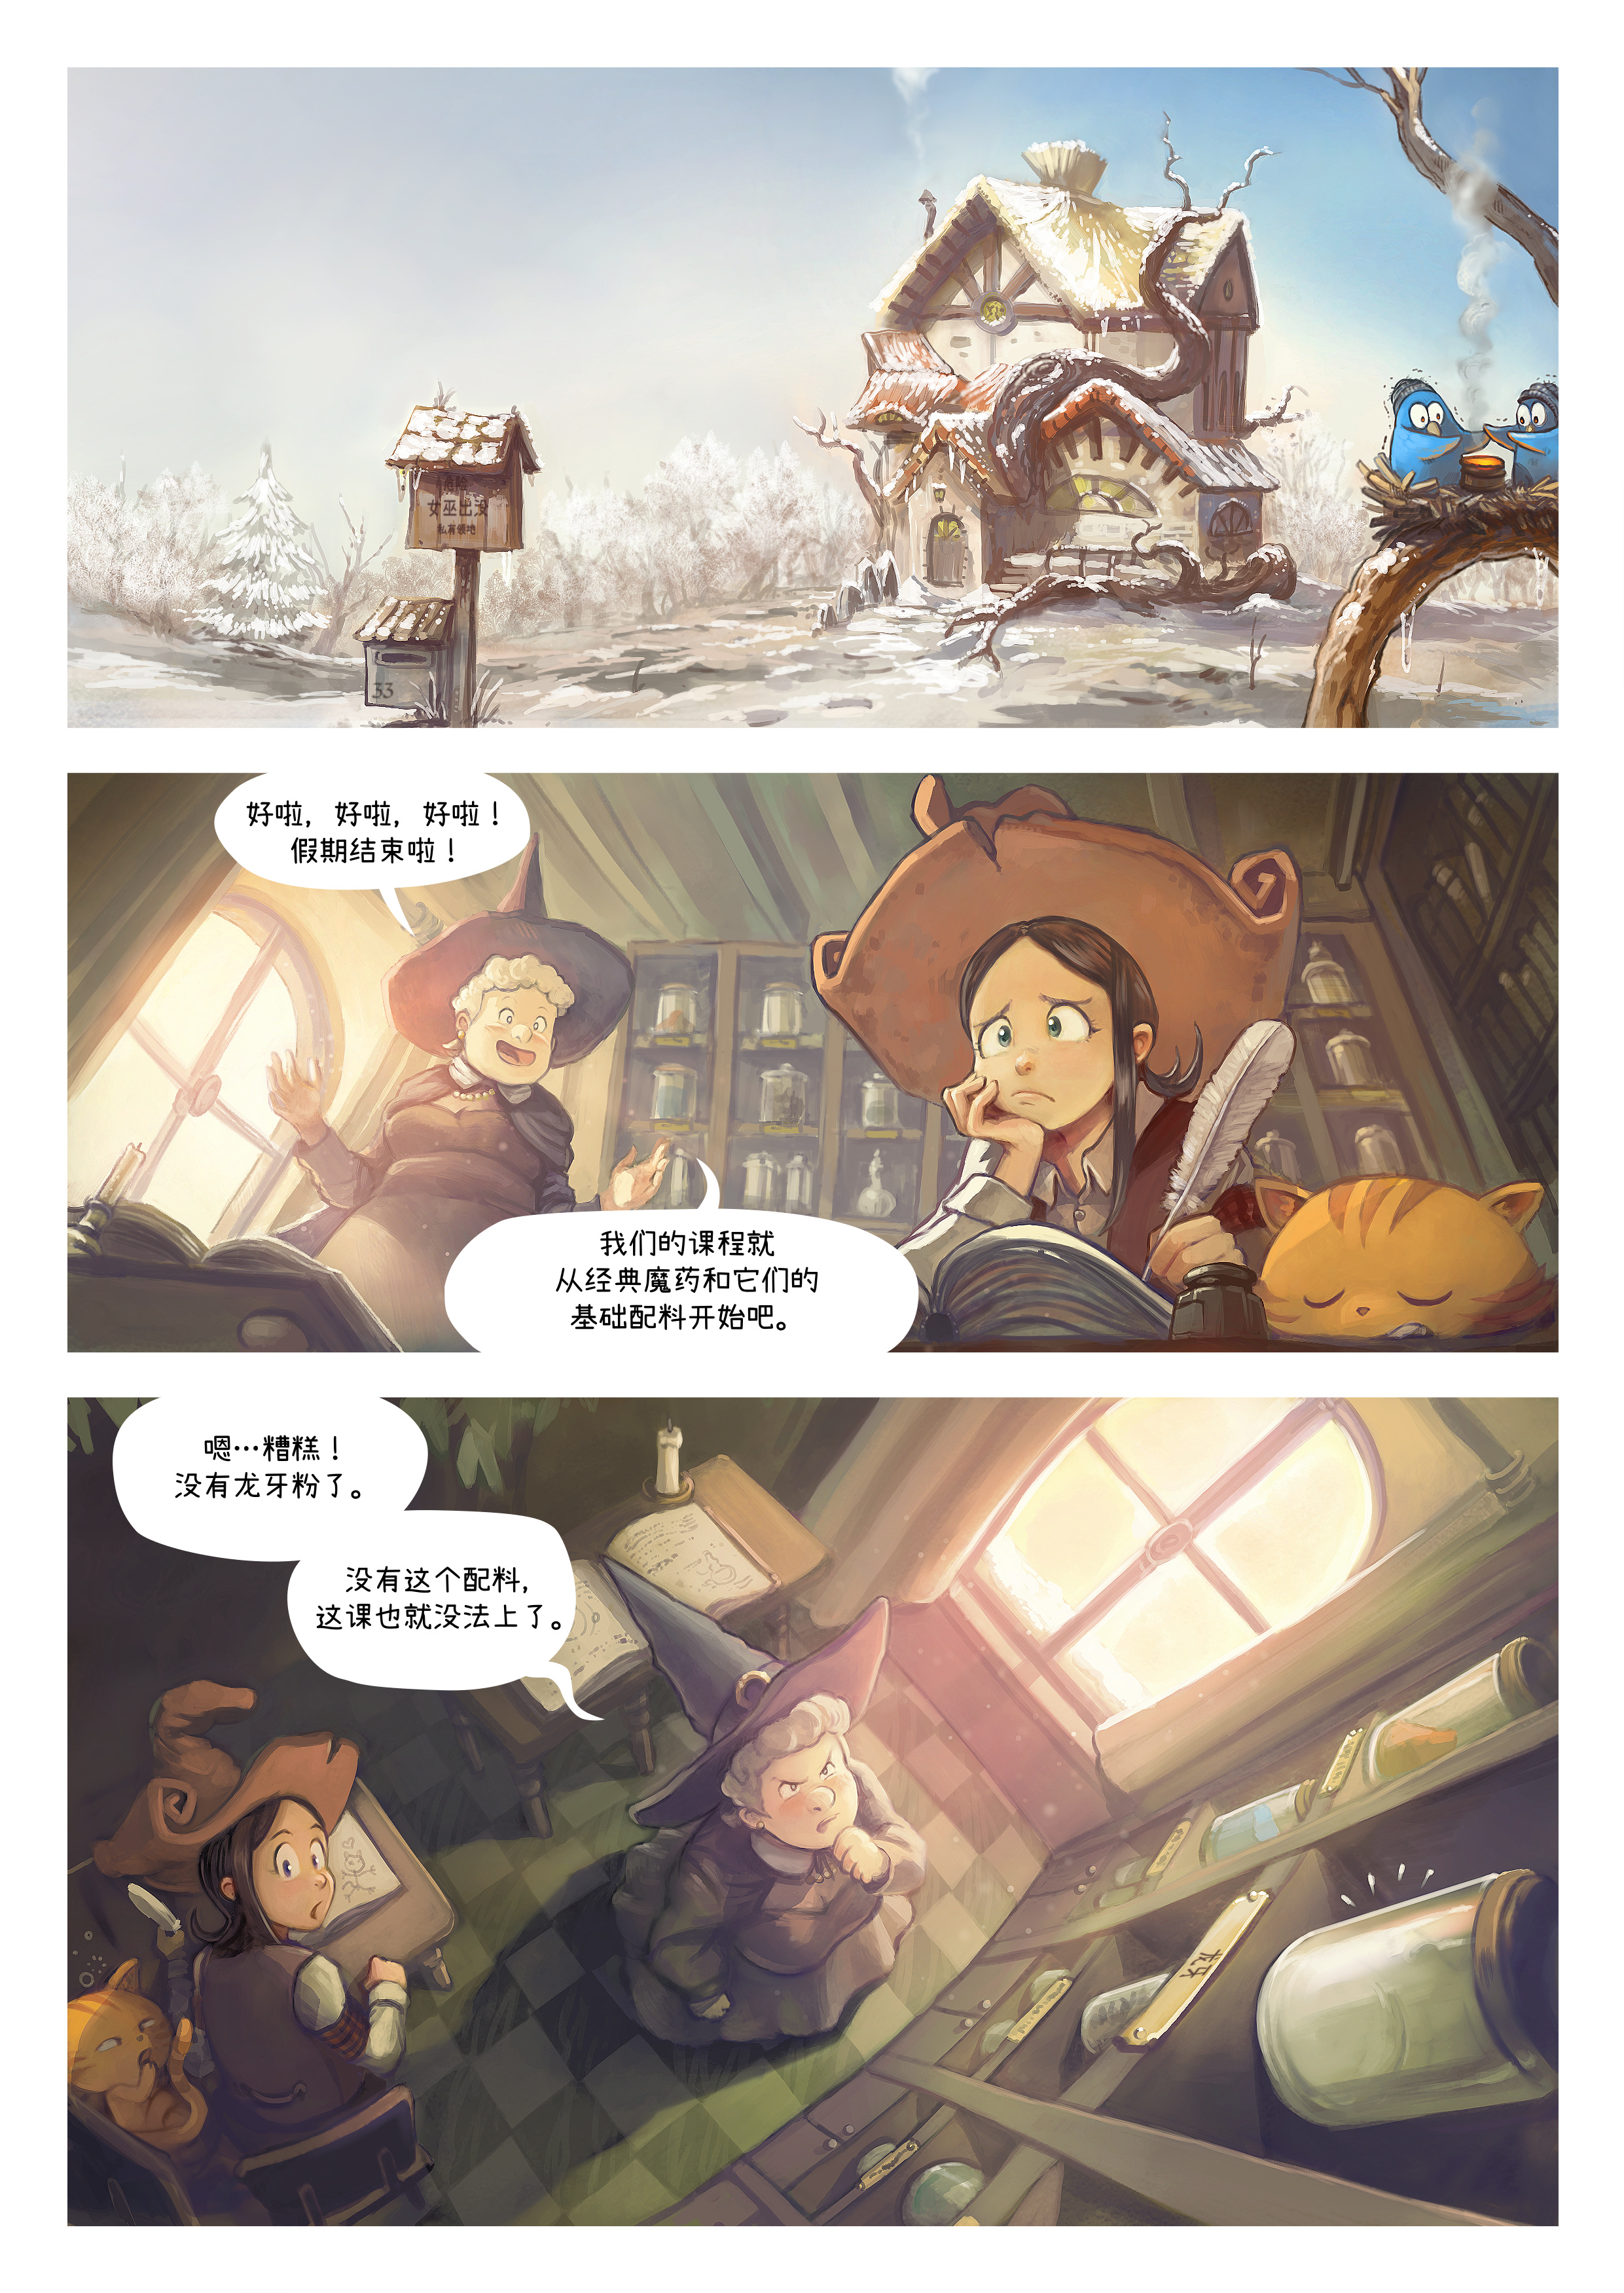 A webcomic page of Pepper&Carrot, 漫画全集 14 [cn], 页面 1